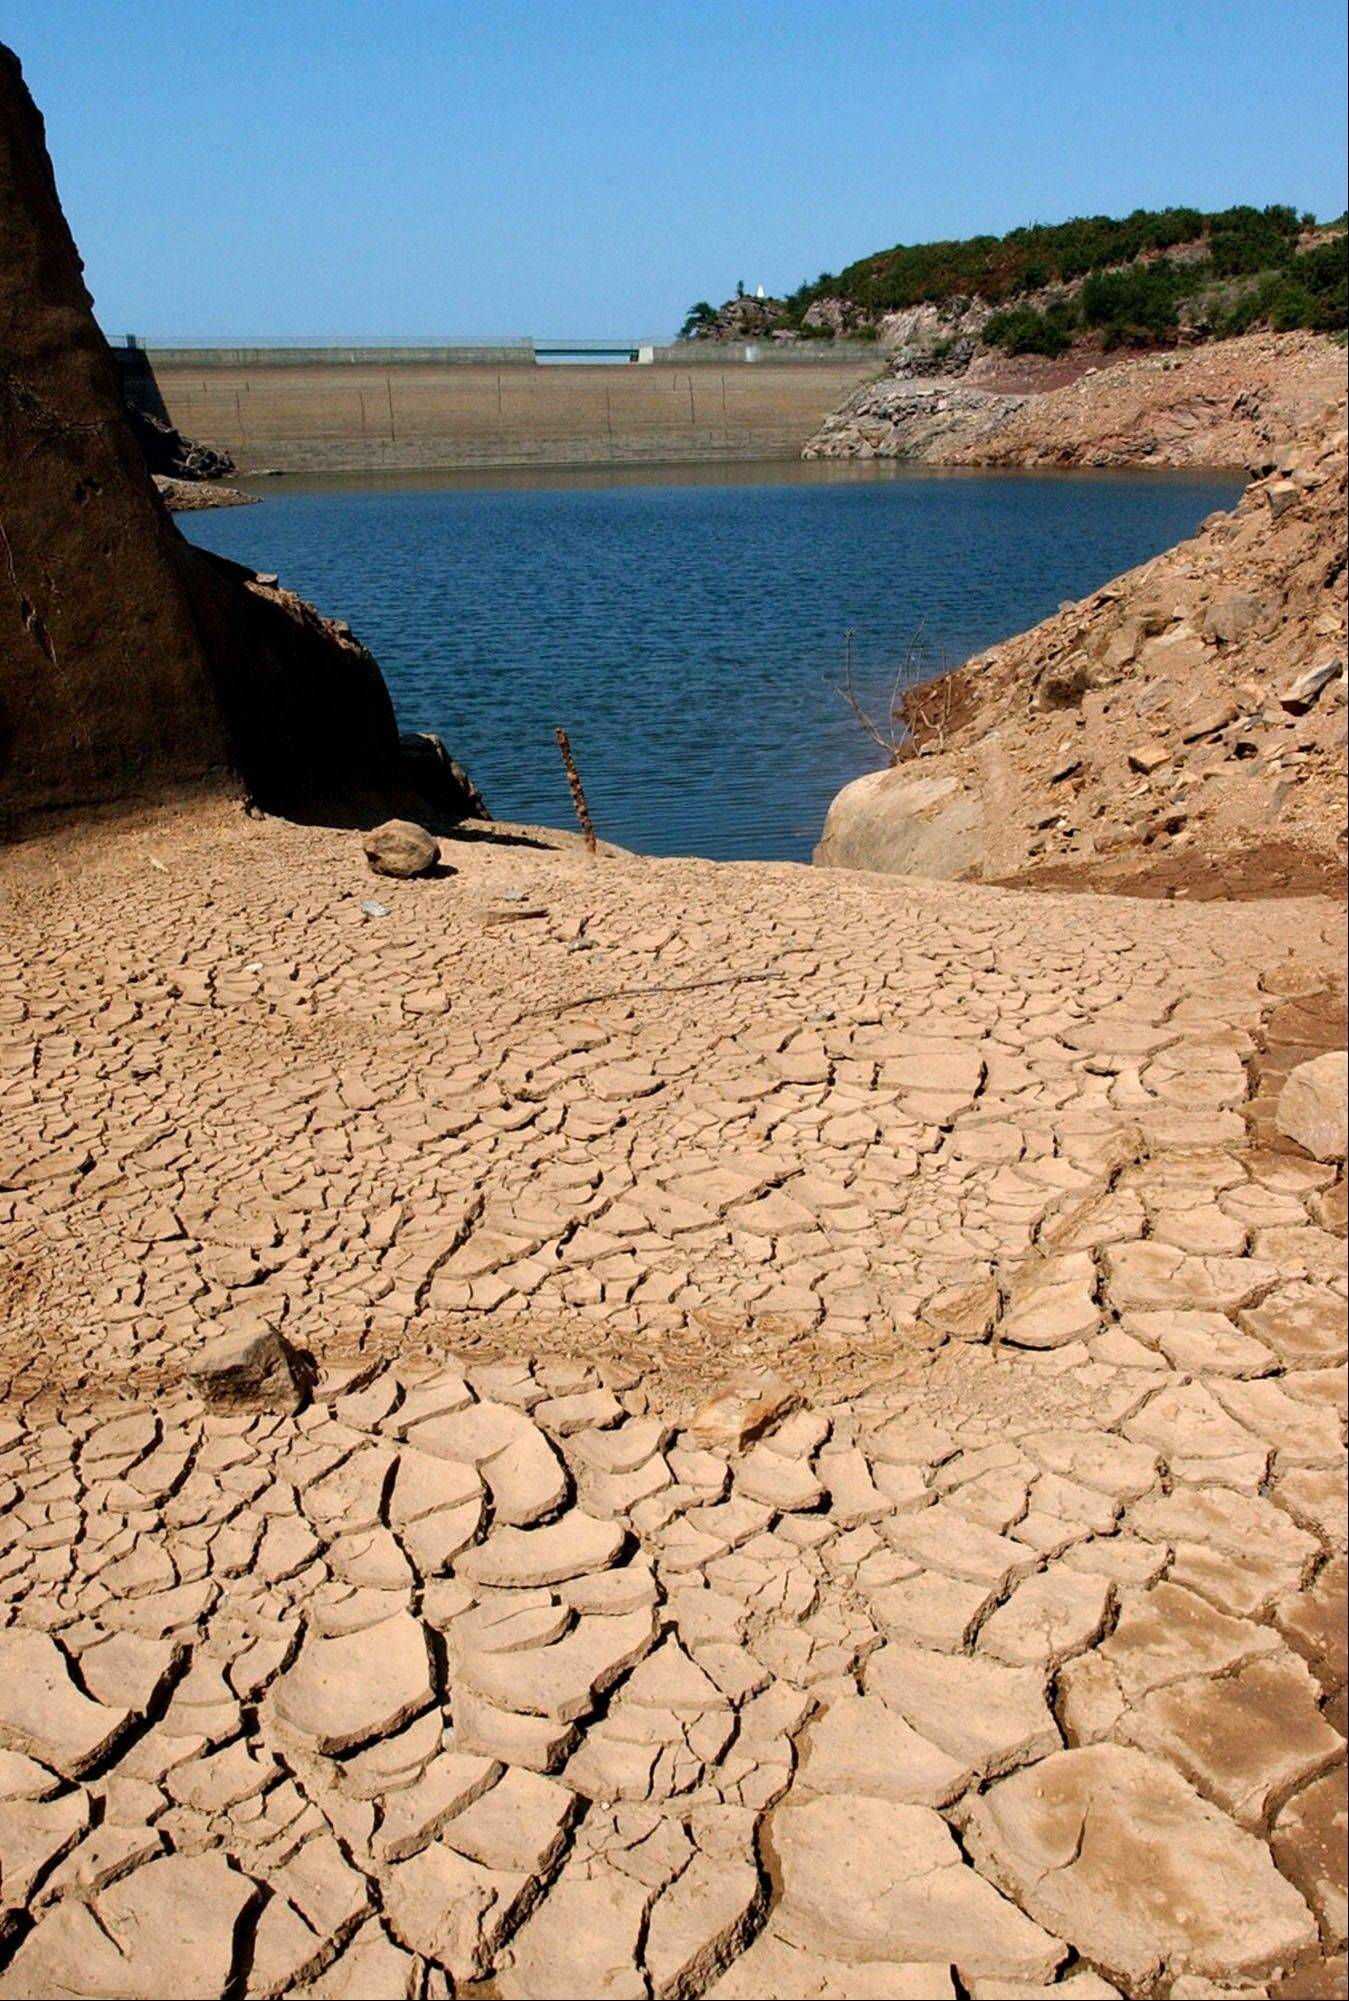 "In this Aug. 19, 2003 file photo, the Ibardin lake, which provides drinking water to the southern French cities of Hendaye, Biriatu and Urrugne, is almost dry due to the recent heat wave, near the French-Spanish border. ""Rather than say, 'Is this because of climate change?' That's the wrong question. What you can say is, `How likely is this to have occurred with the absence of global warming?' It's so extraordinarily unlikely that it has to be due to global warming,"" says Andrew Weaver, a climate scientist at the University of Victoria in British Columbia."